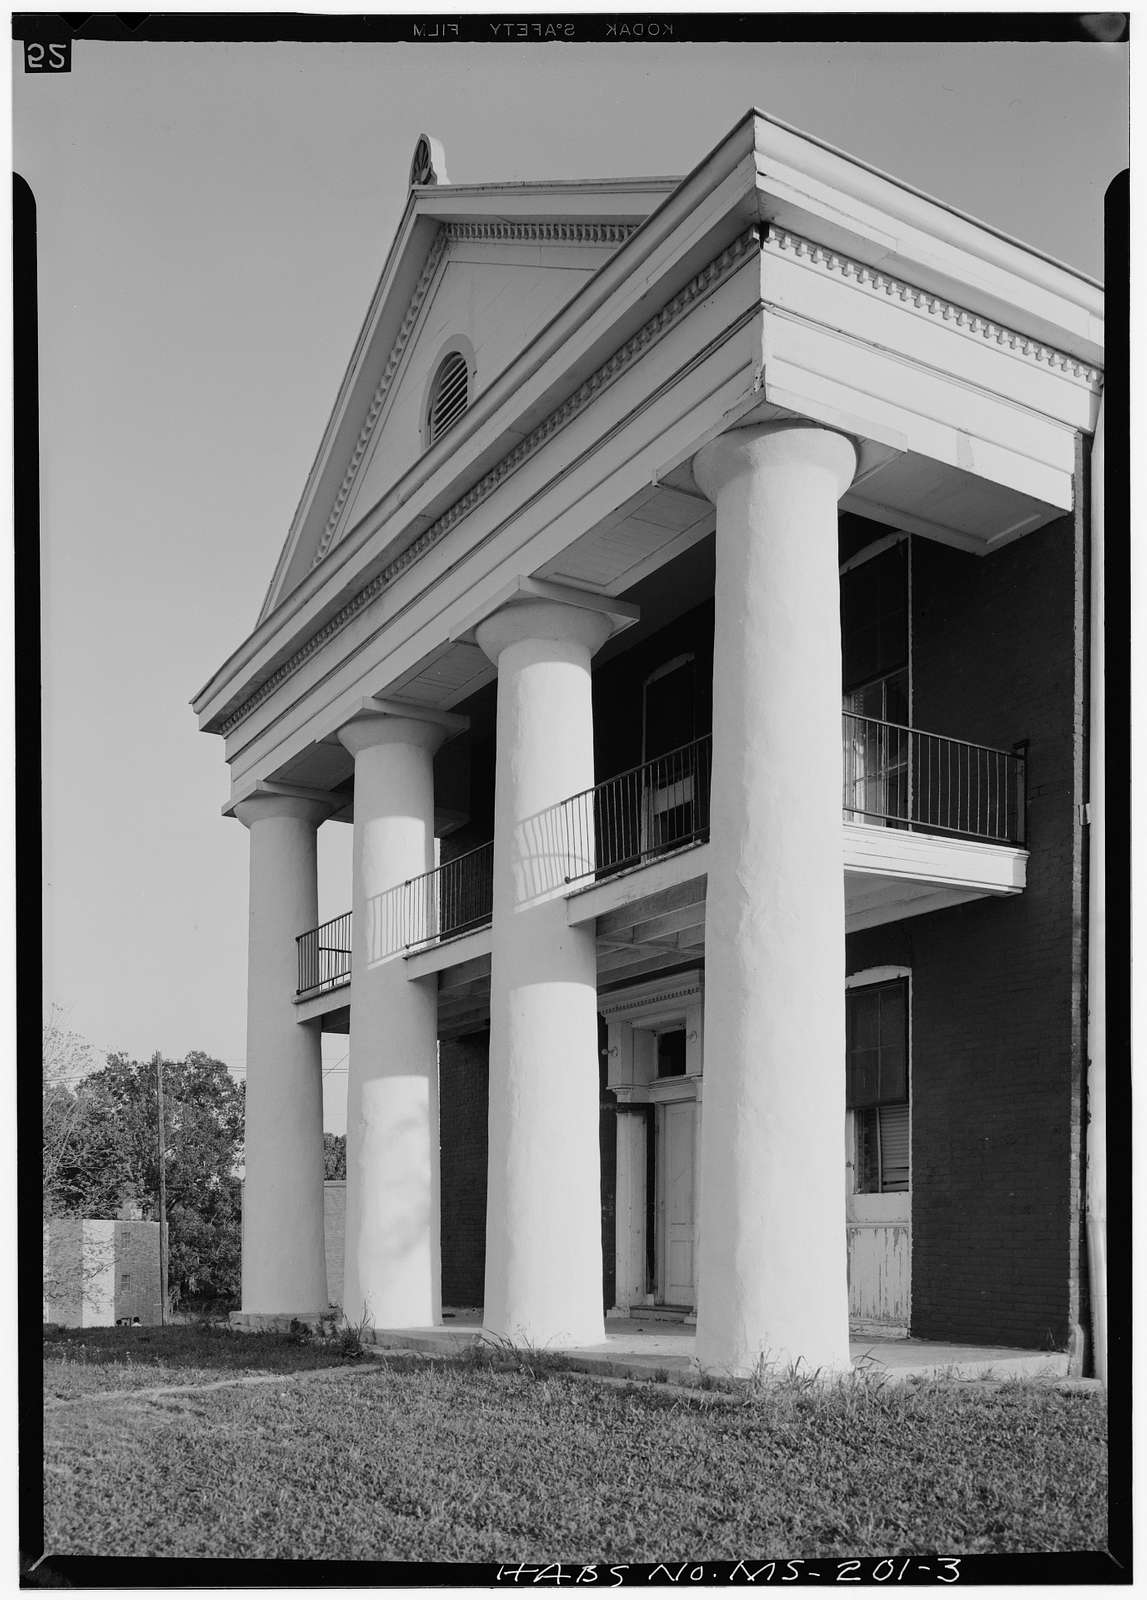 Alcorn State University, Literary Society Building, Alcorn State University Campus, Alcorn, Claiborne County, MS